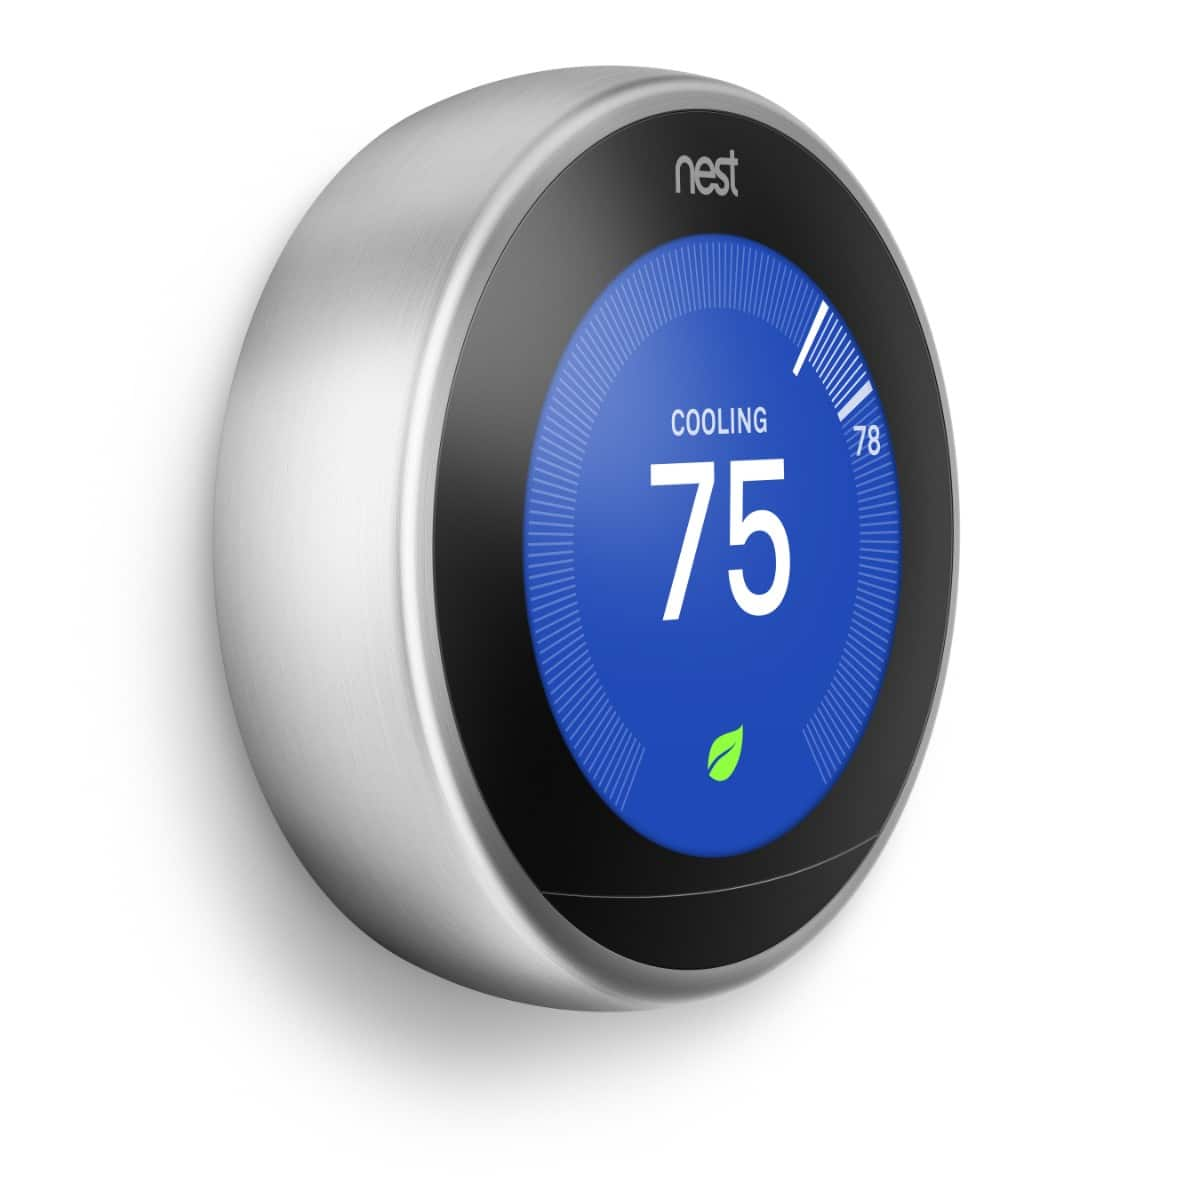 National grid customers - Nest Thermostat Generation 3 - $99